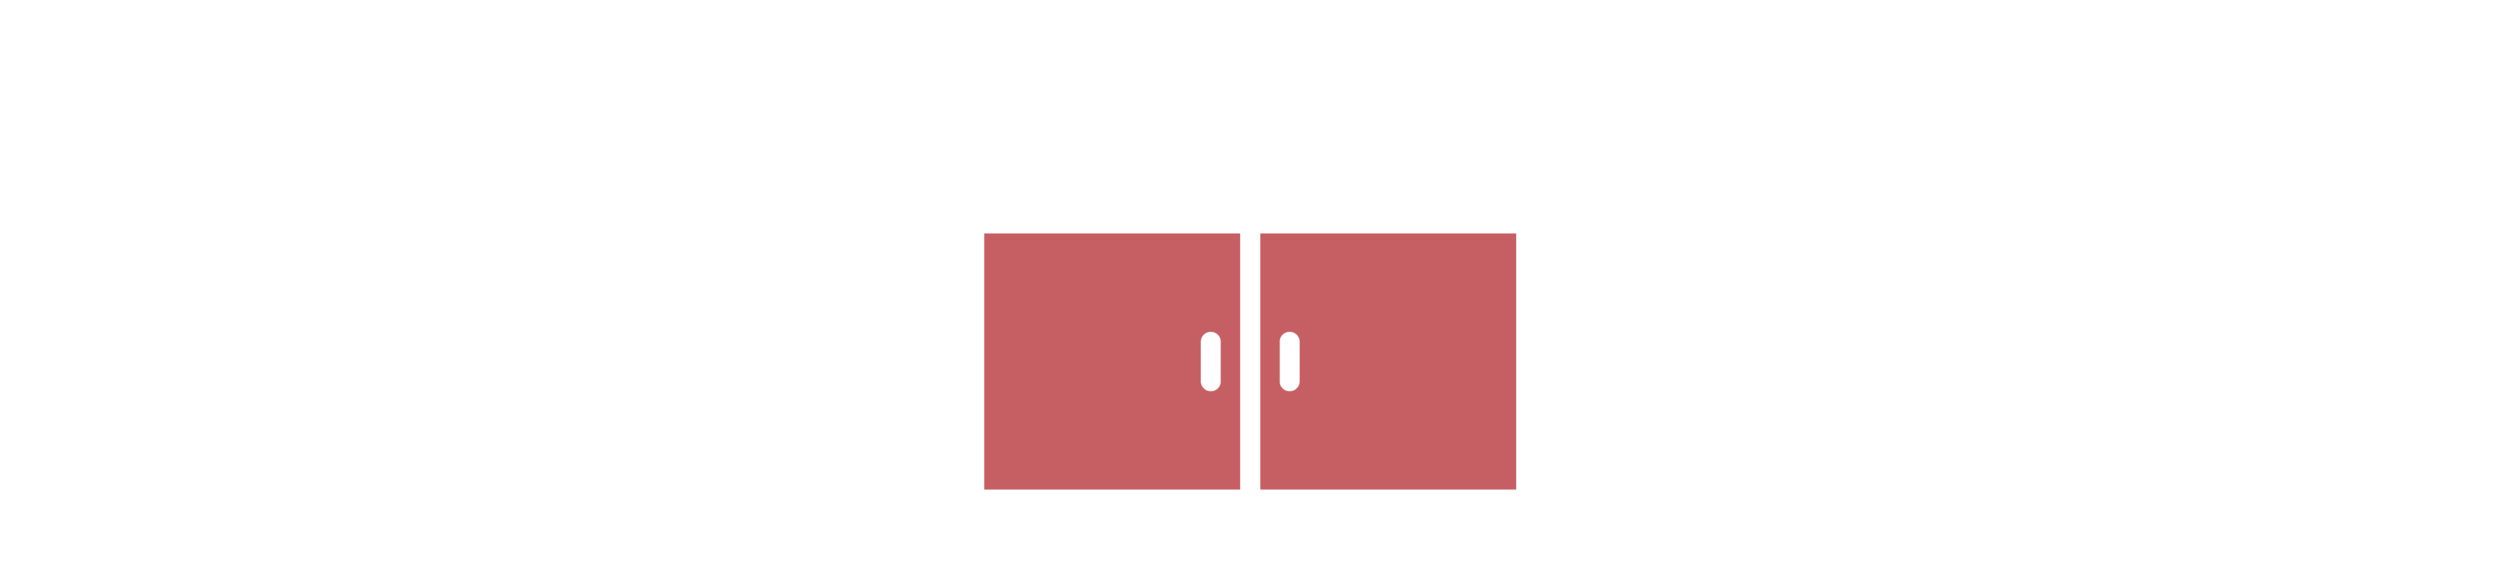 icon-Sink_products_nobg.png